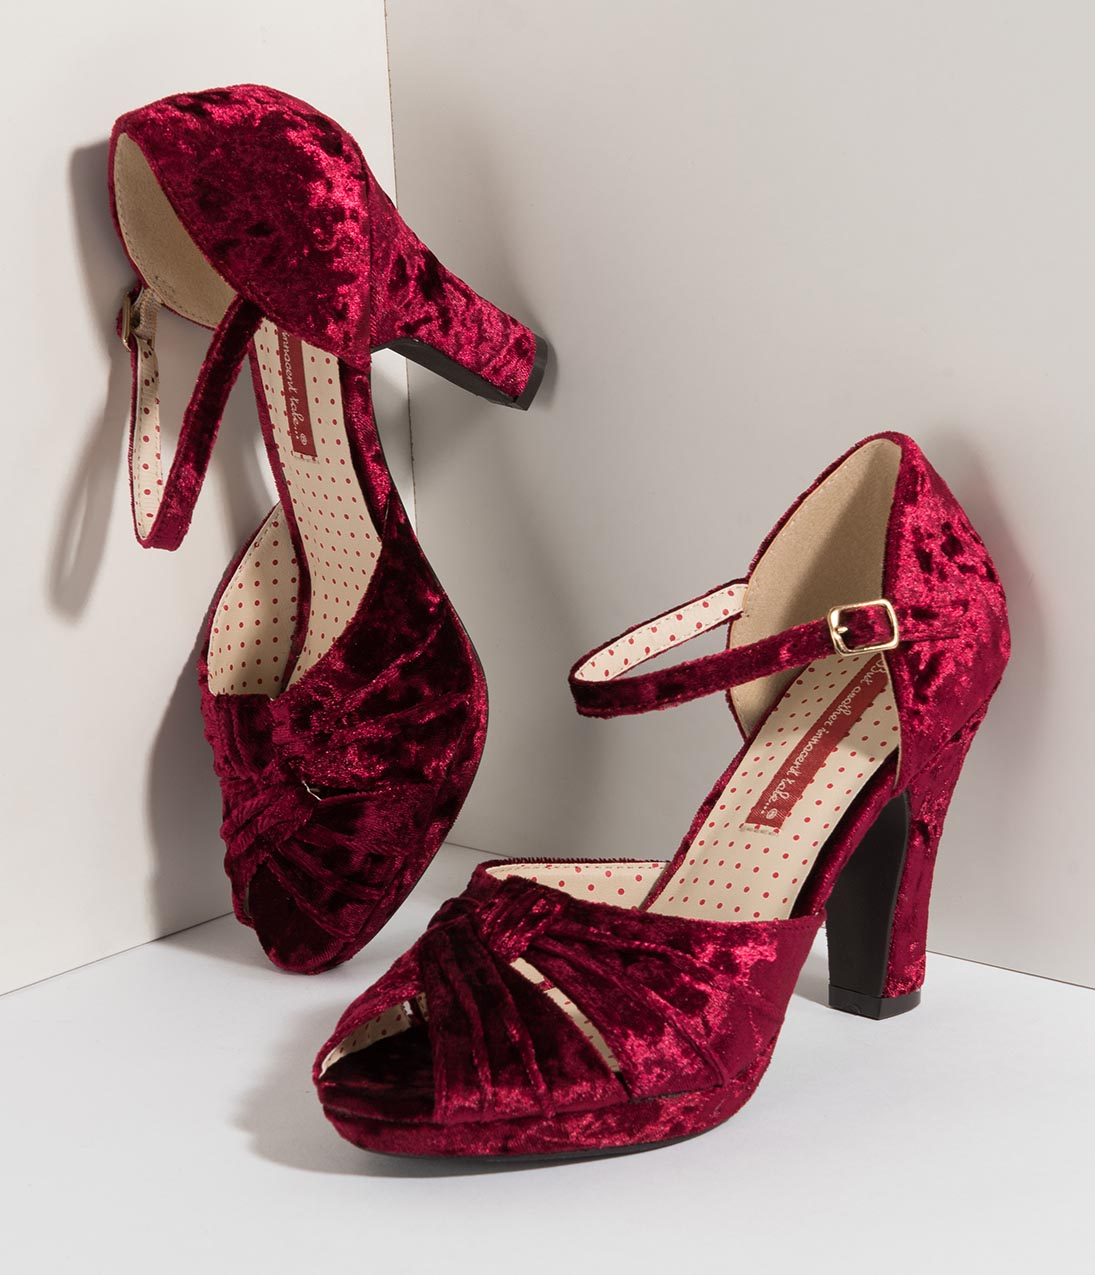 Vintage Style Shoes, Vintage Inspired Shoes B.a.i.t. 1940S Style Ruby Velvet Luella Peep Toe Heels $74.00 AT vintagedancer.com